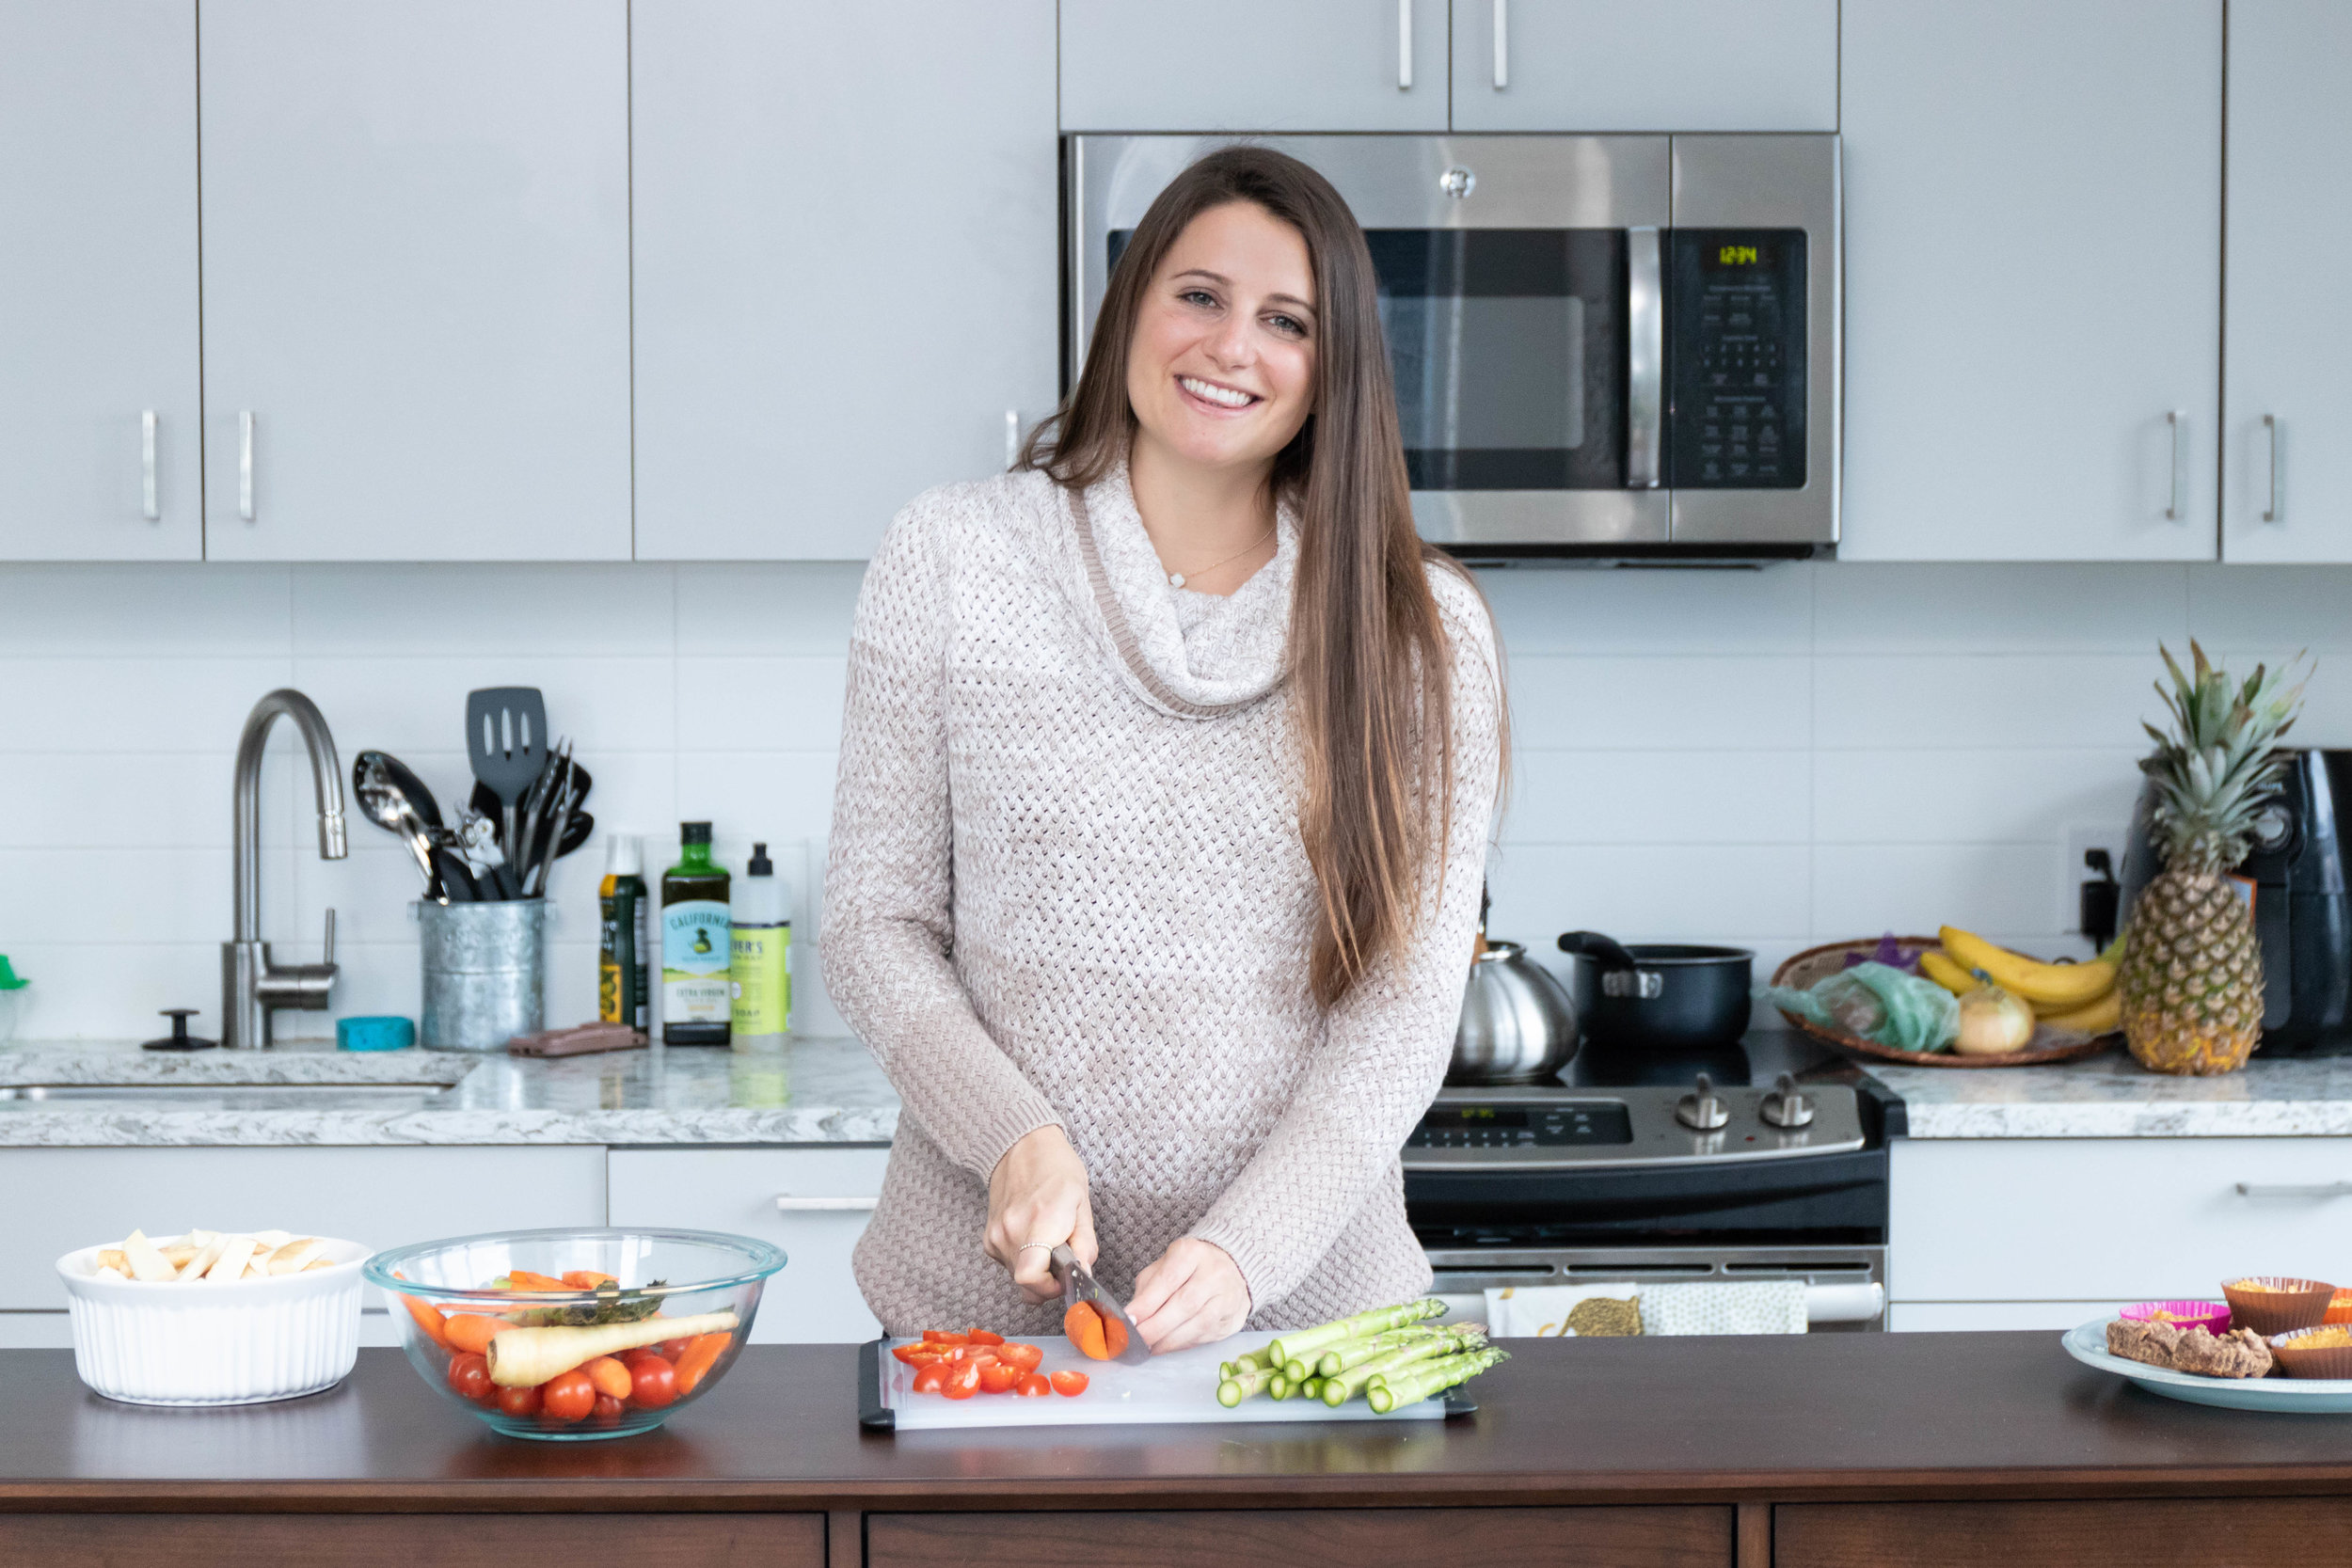 Did you know? - Erin is a registered dietitian who provides individualized meal plans for her clients.click the image to learn more about her photo shoot.